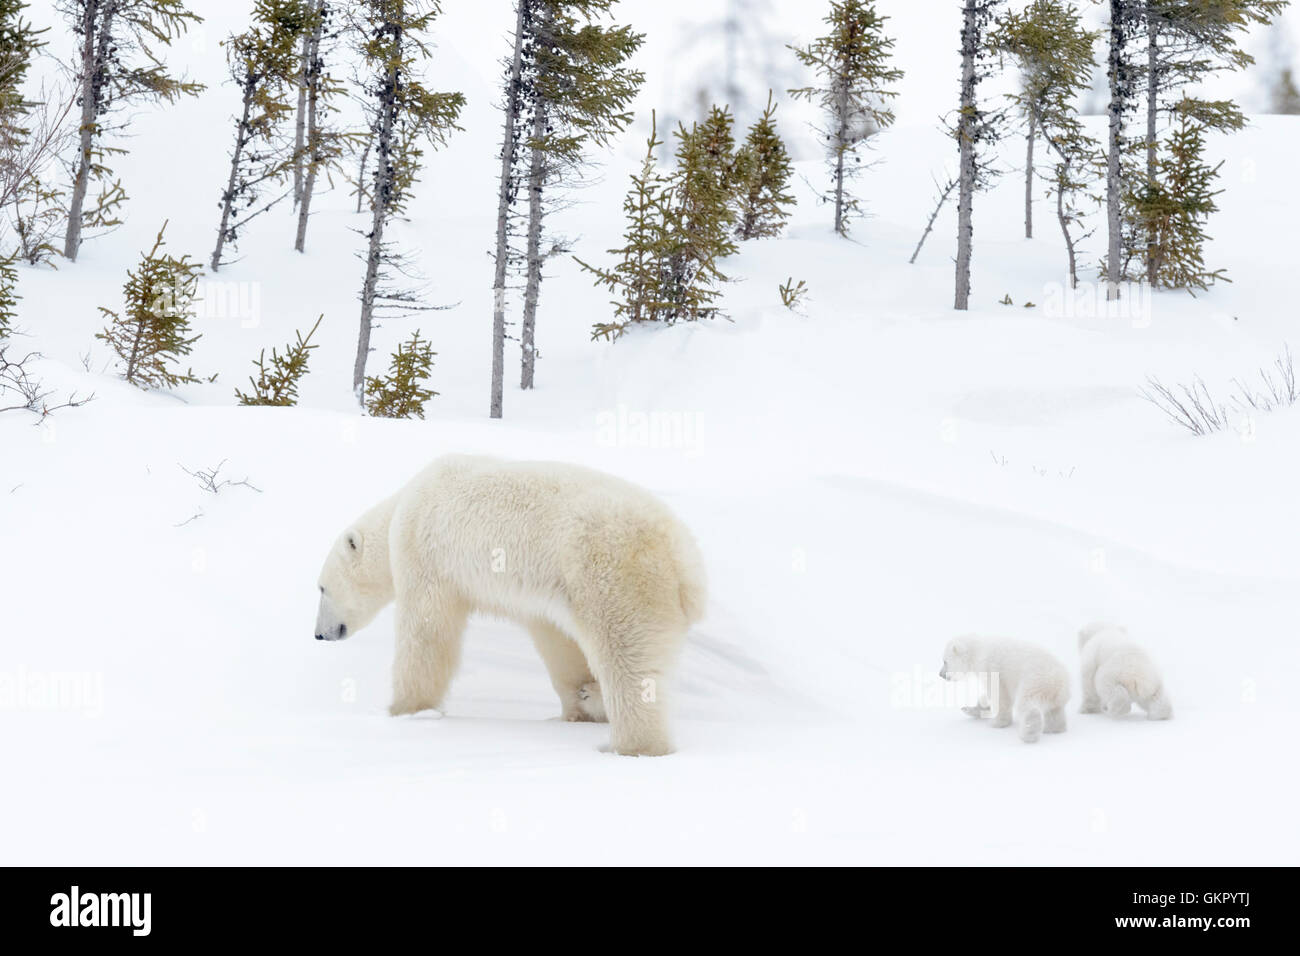 Polar bear mother (Ursus maritimus) walking on tundra with two new born cubs, Wapusk National Park, Manitoba, Canada - Stock Image